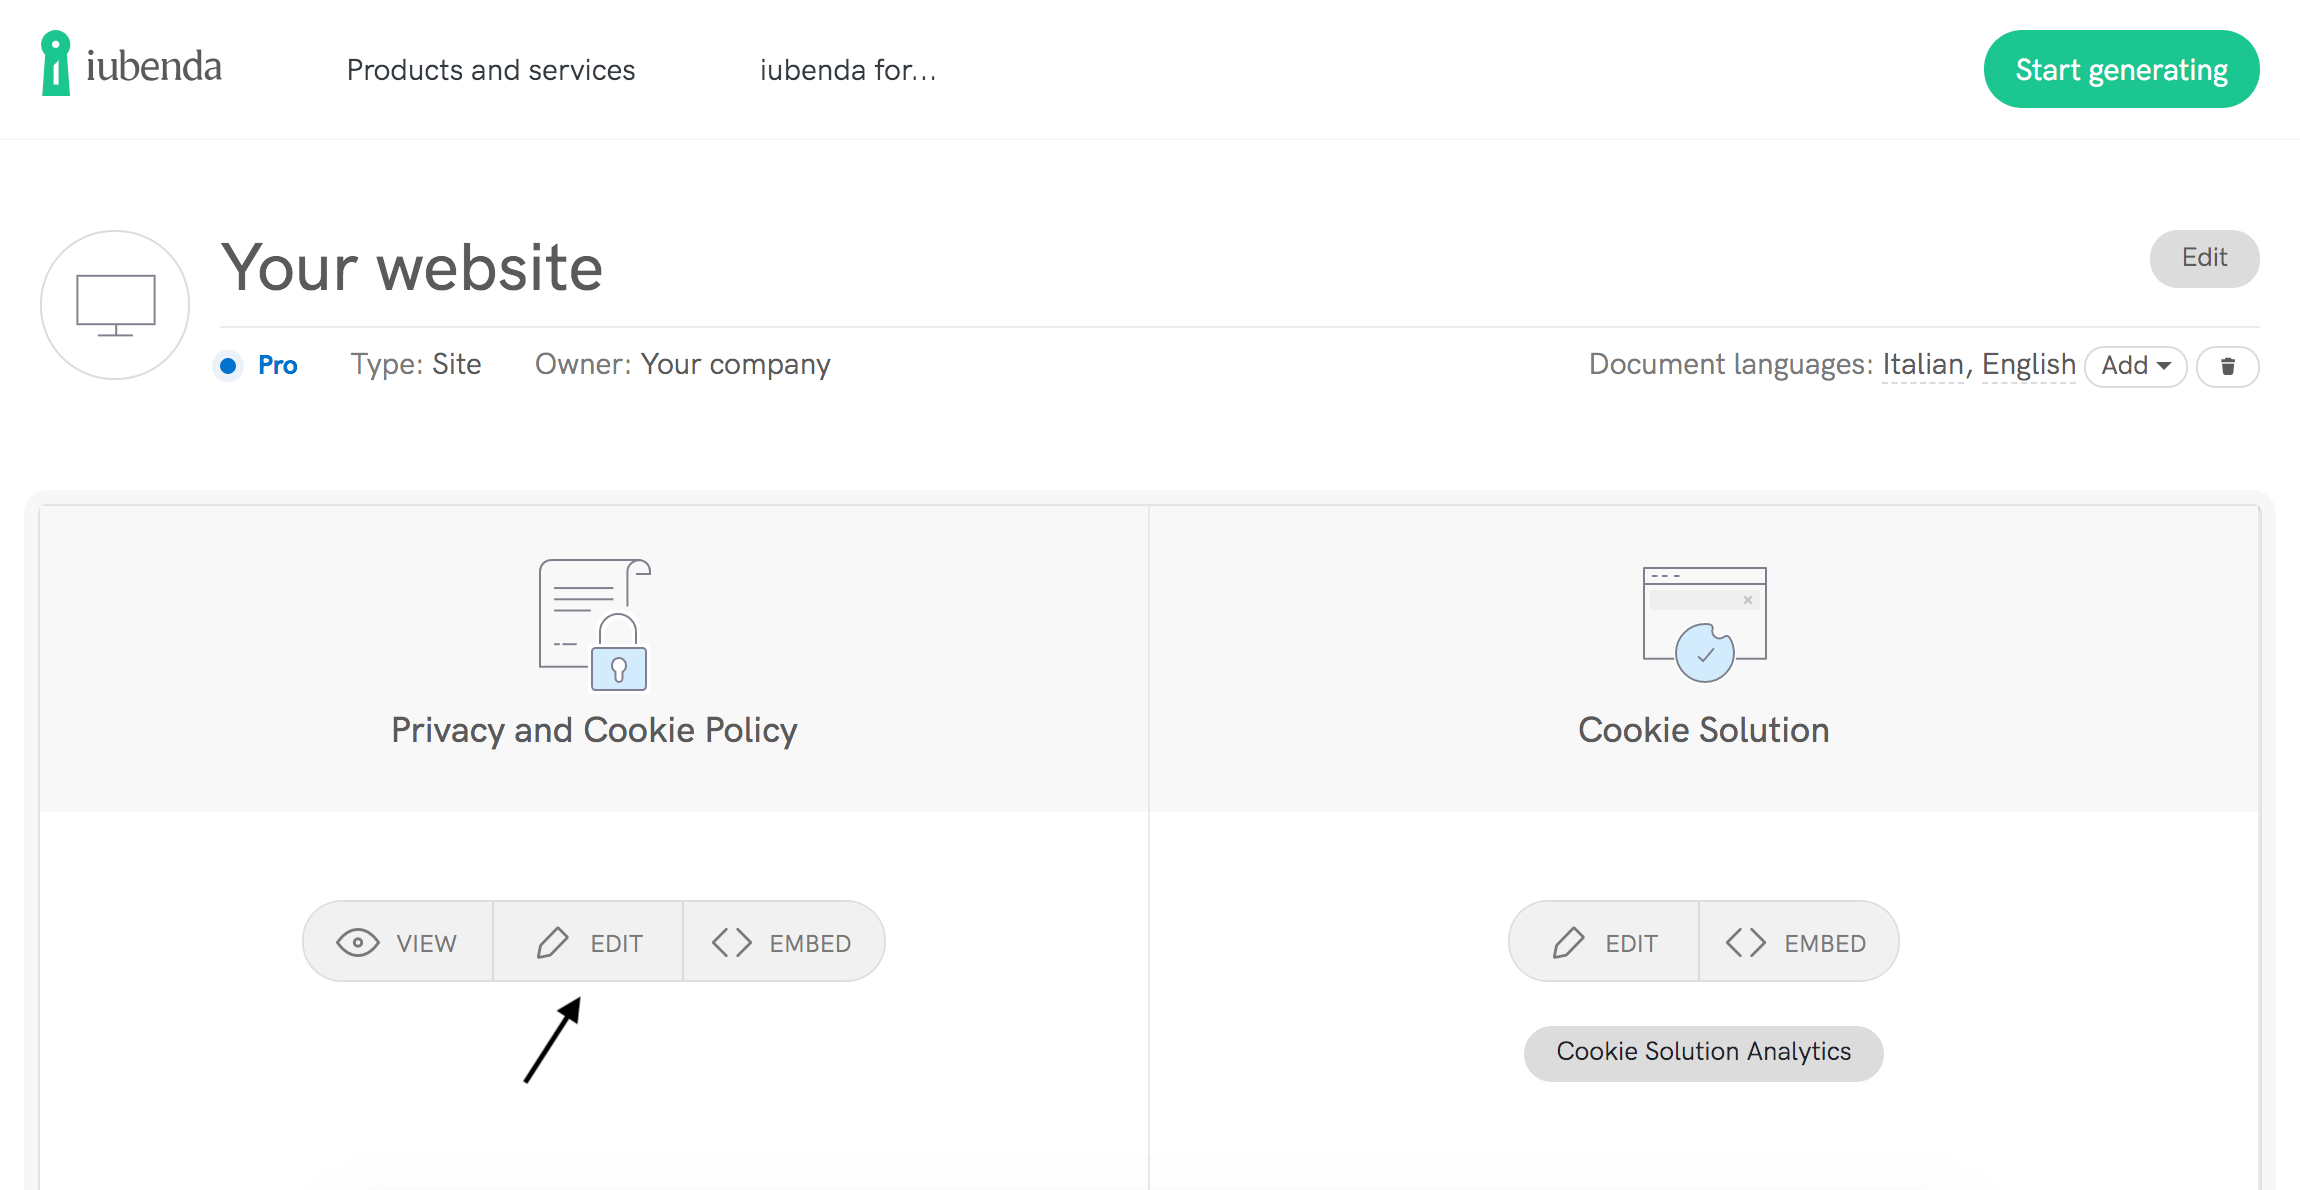 Edit your Privacy and Cookie Policy